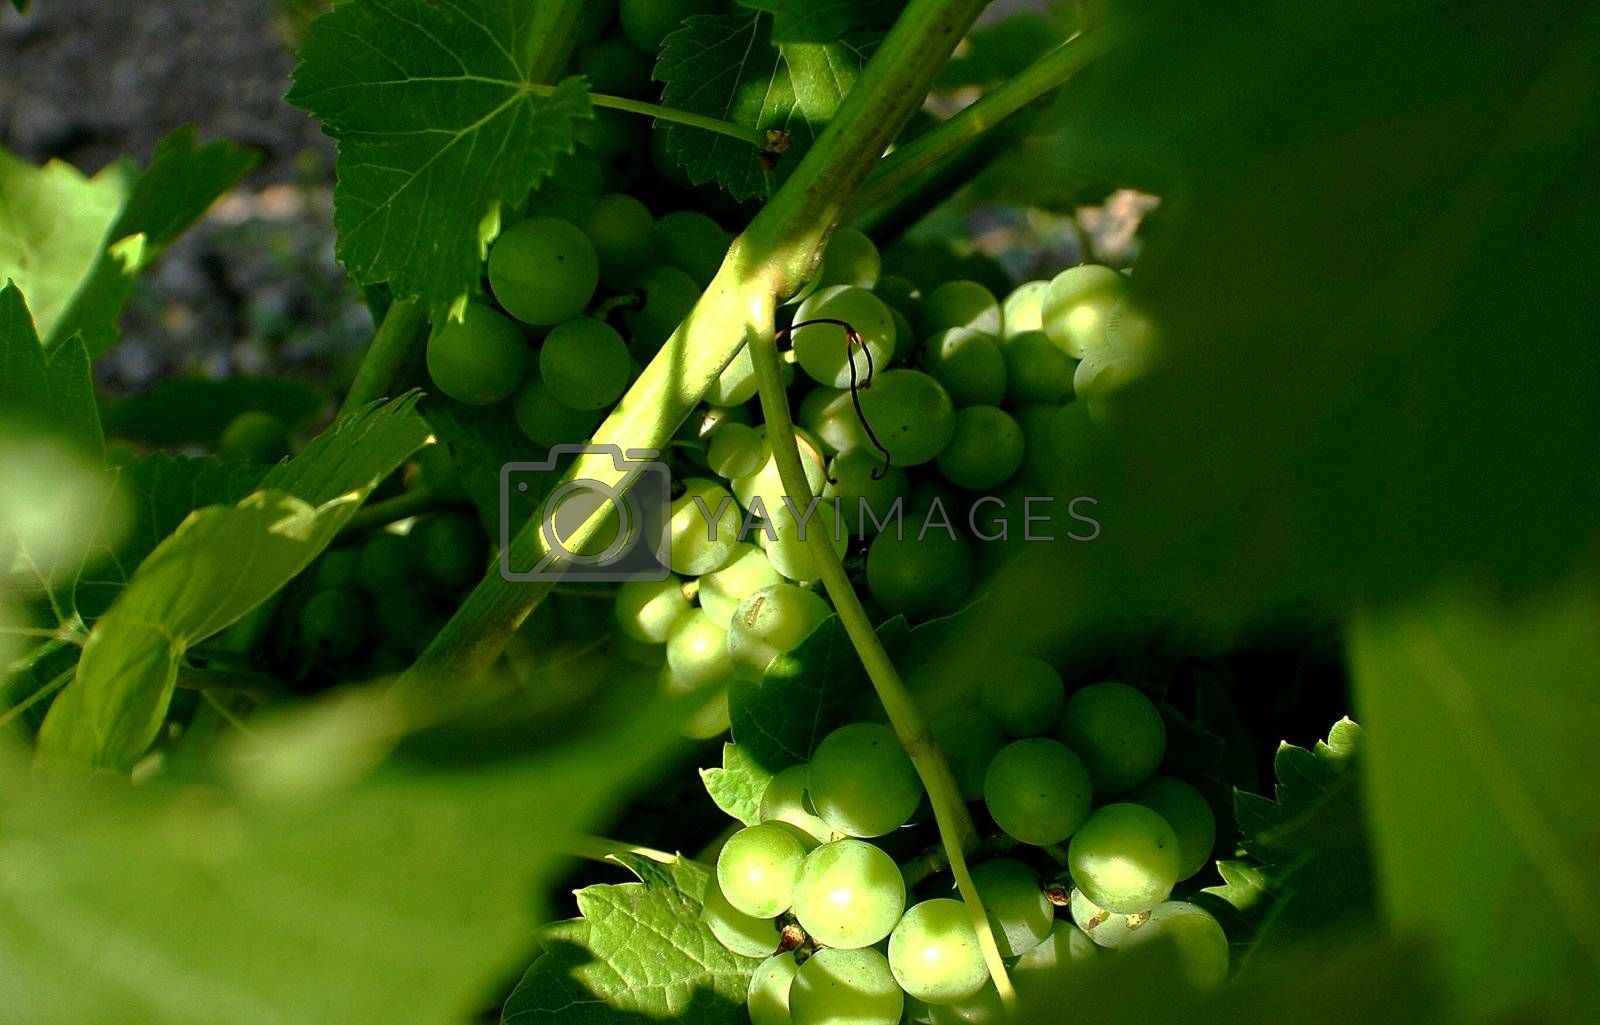 Wine making grapes hanging on a vine branch